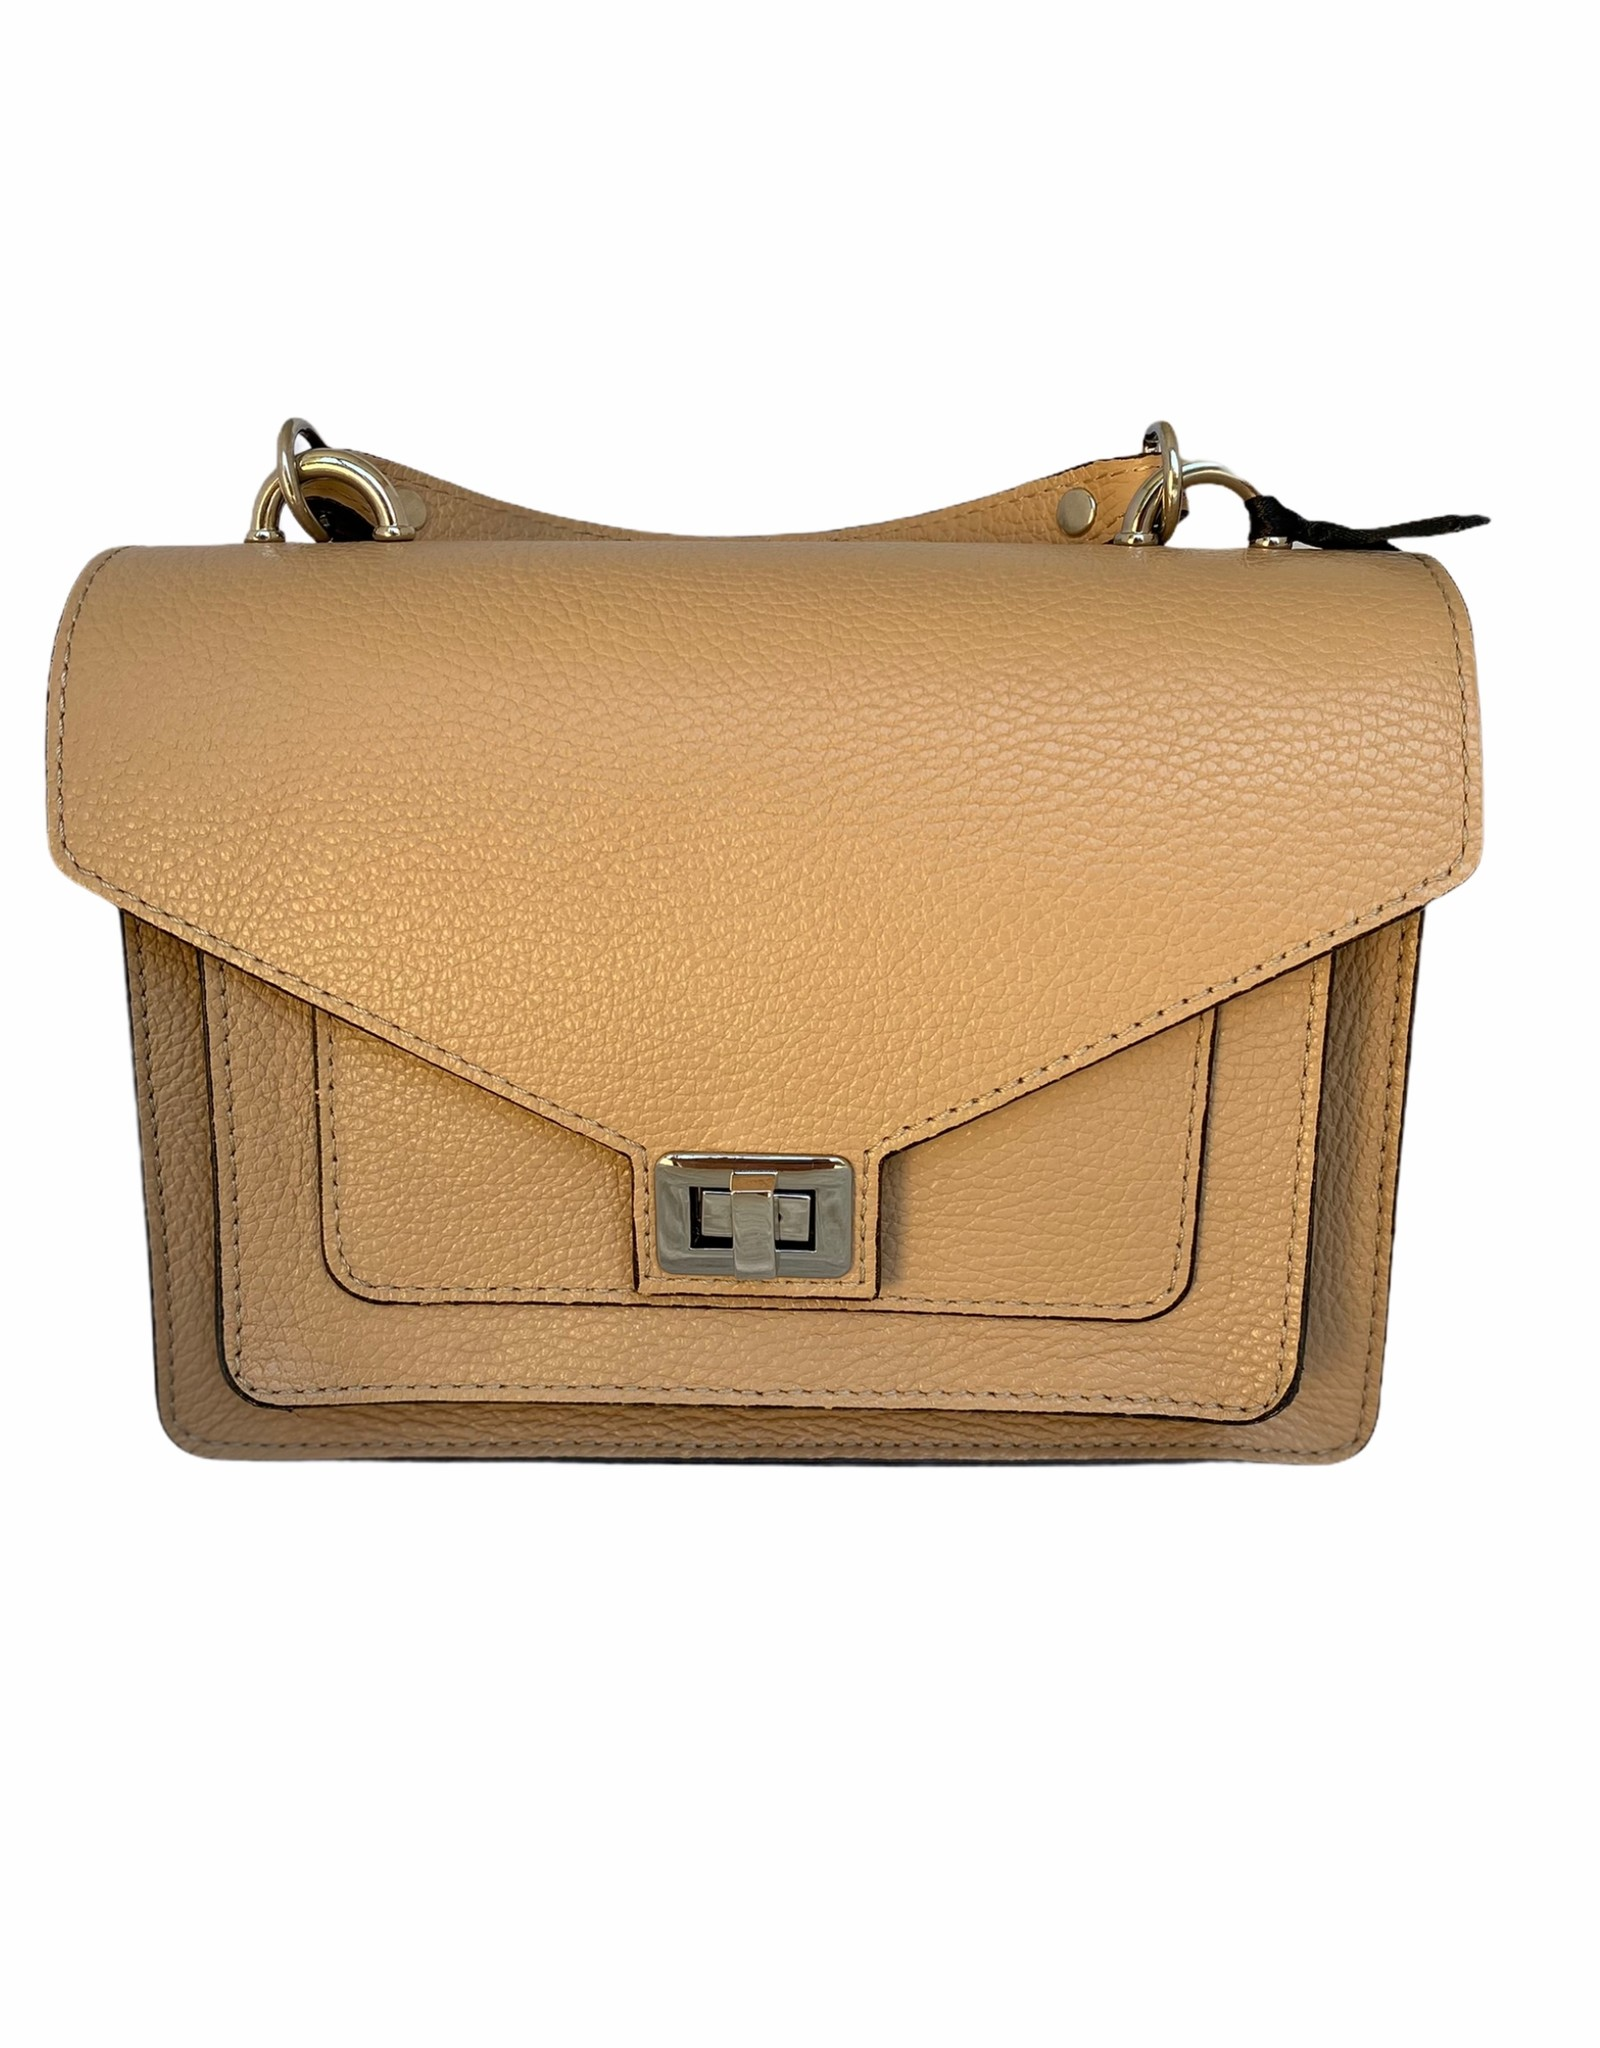 Leather classic bag with handle and long shoulderbelt.